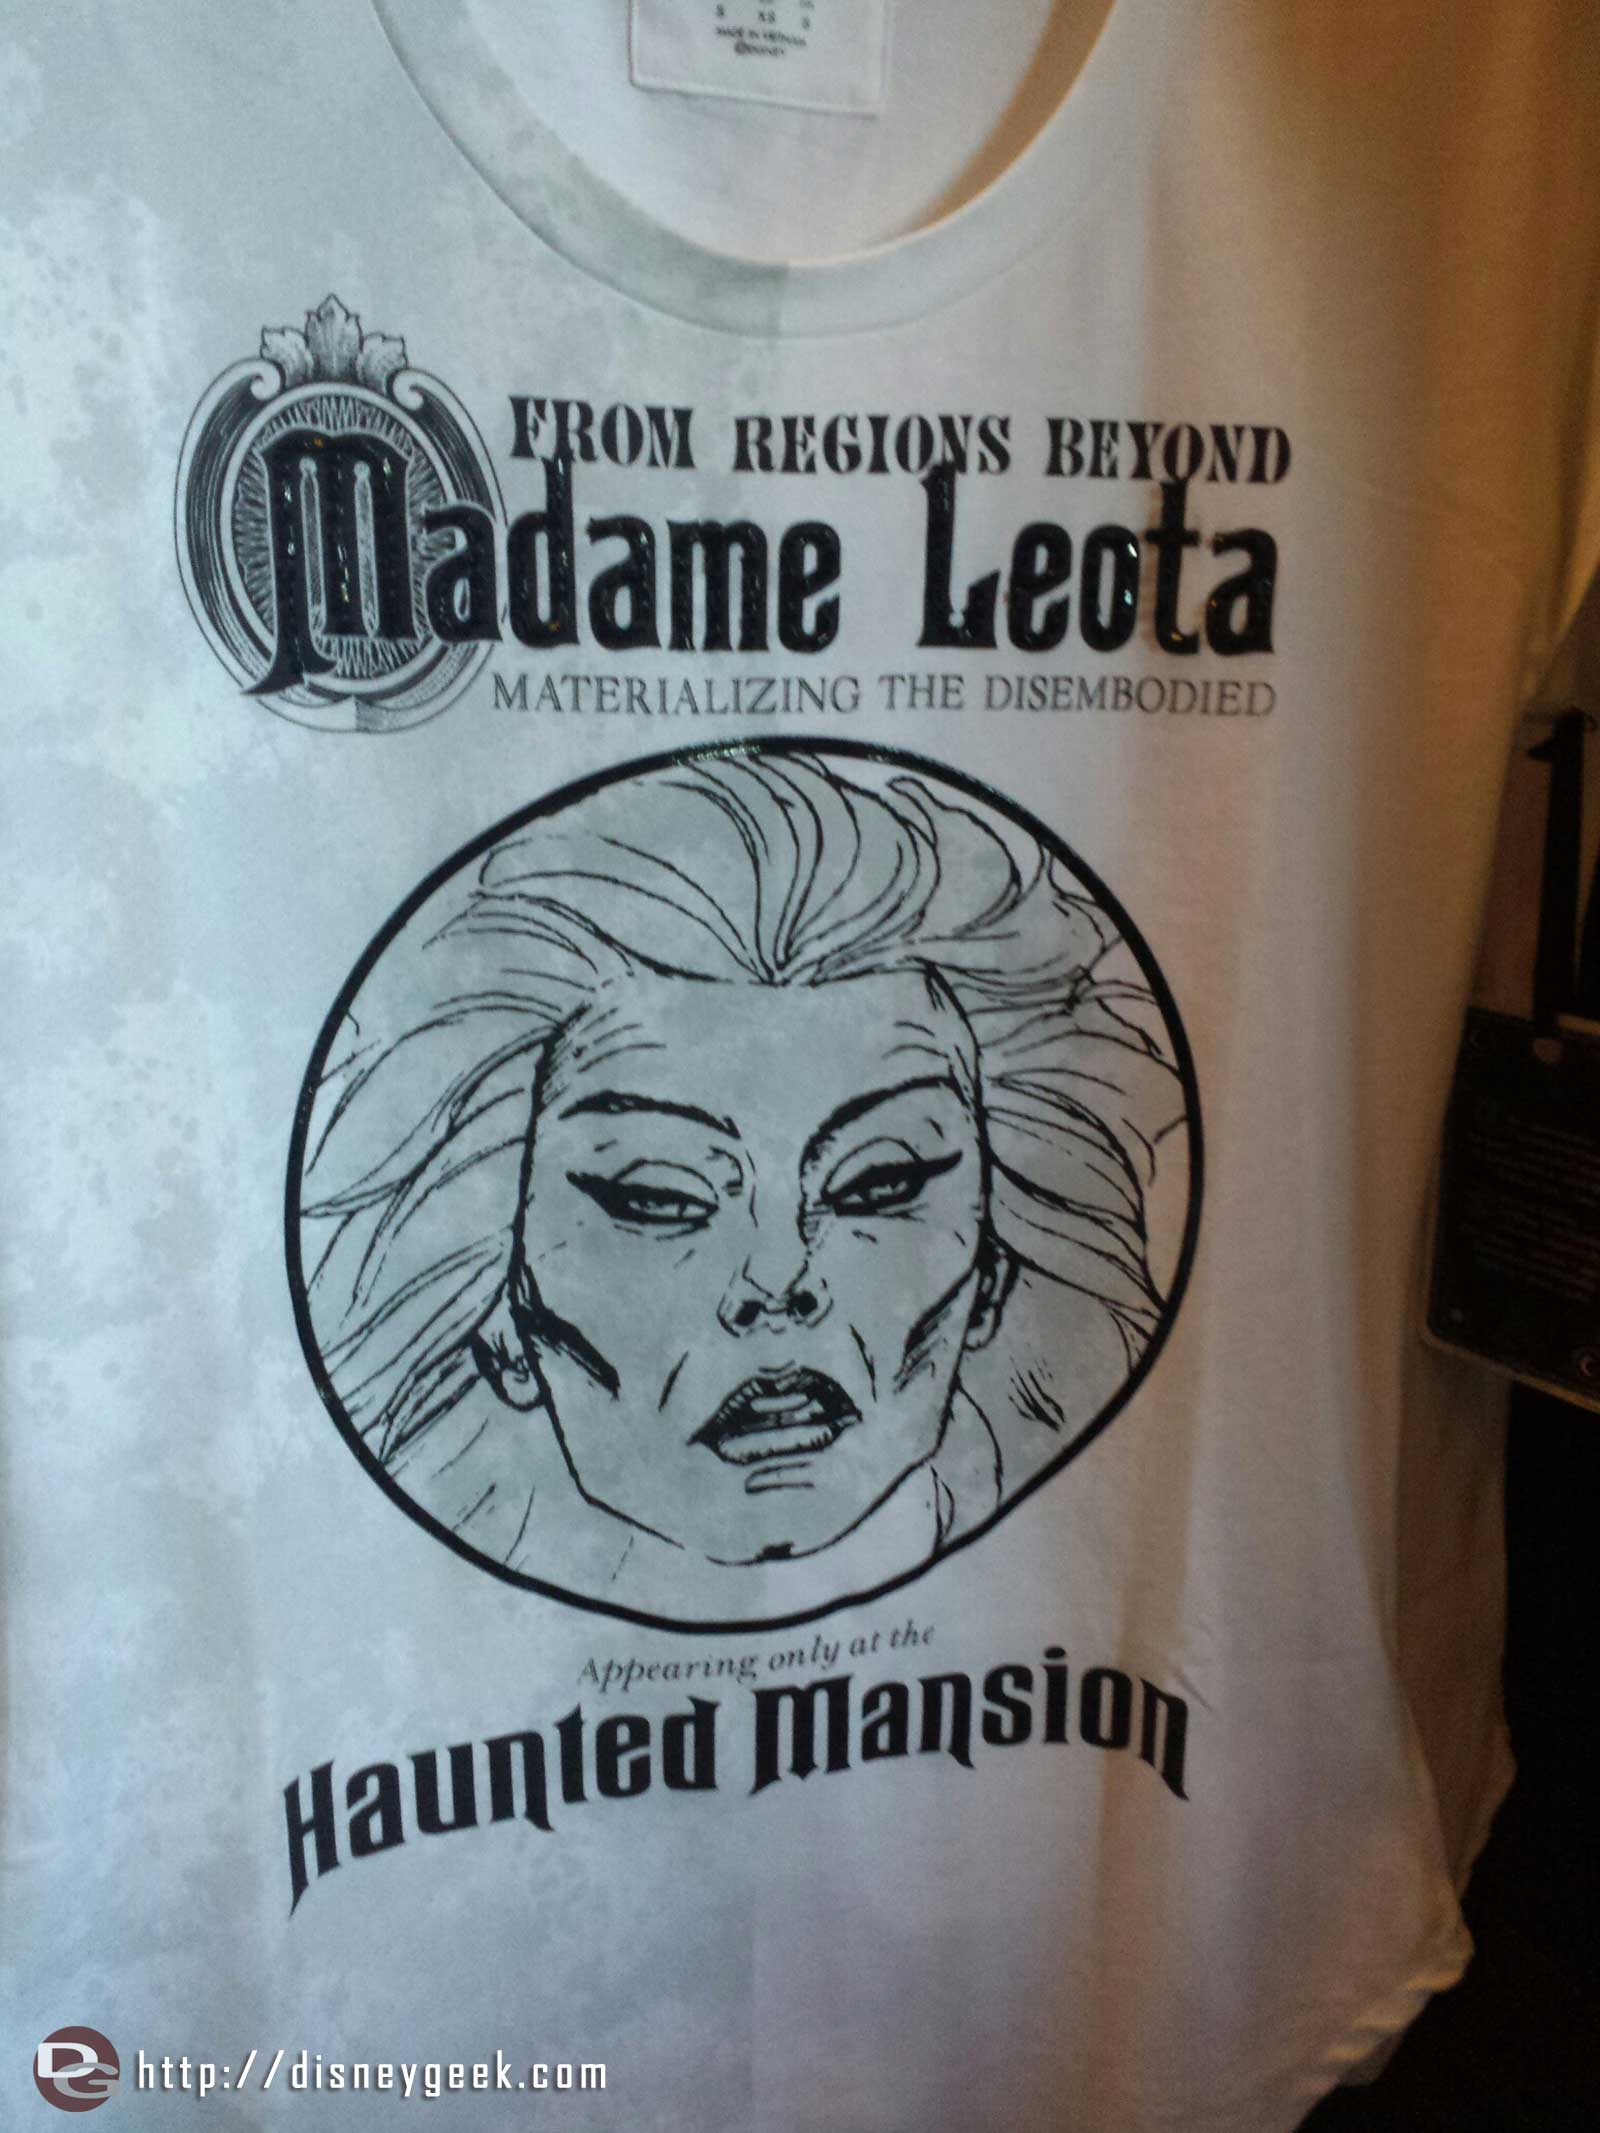 Also plenty of open edition merchandise for the Haunted Mansion – A Madame Leota shirt